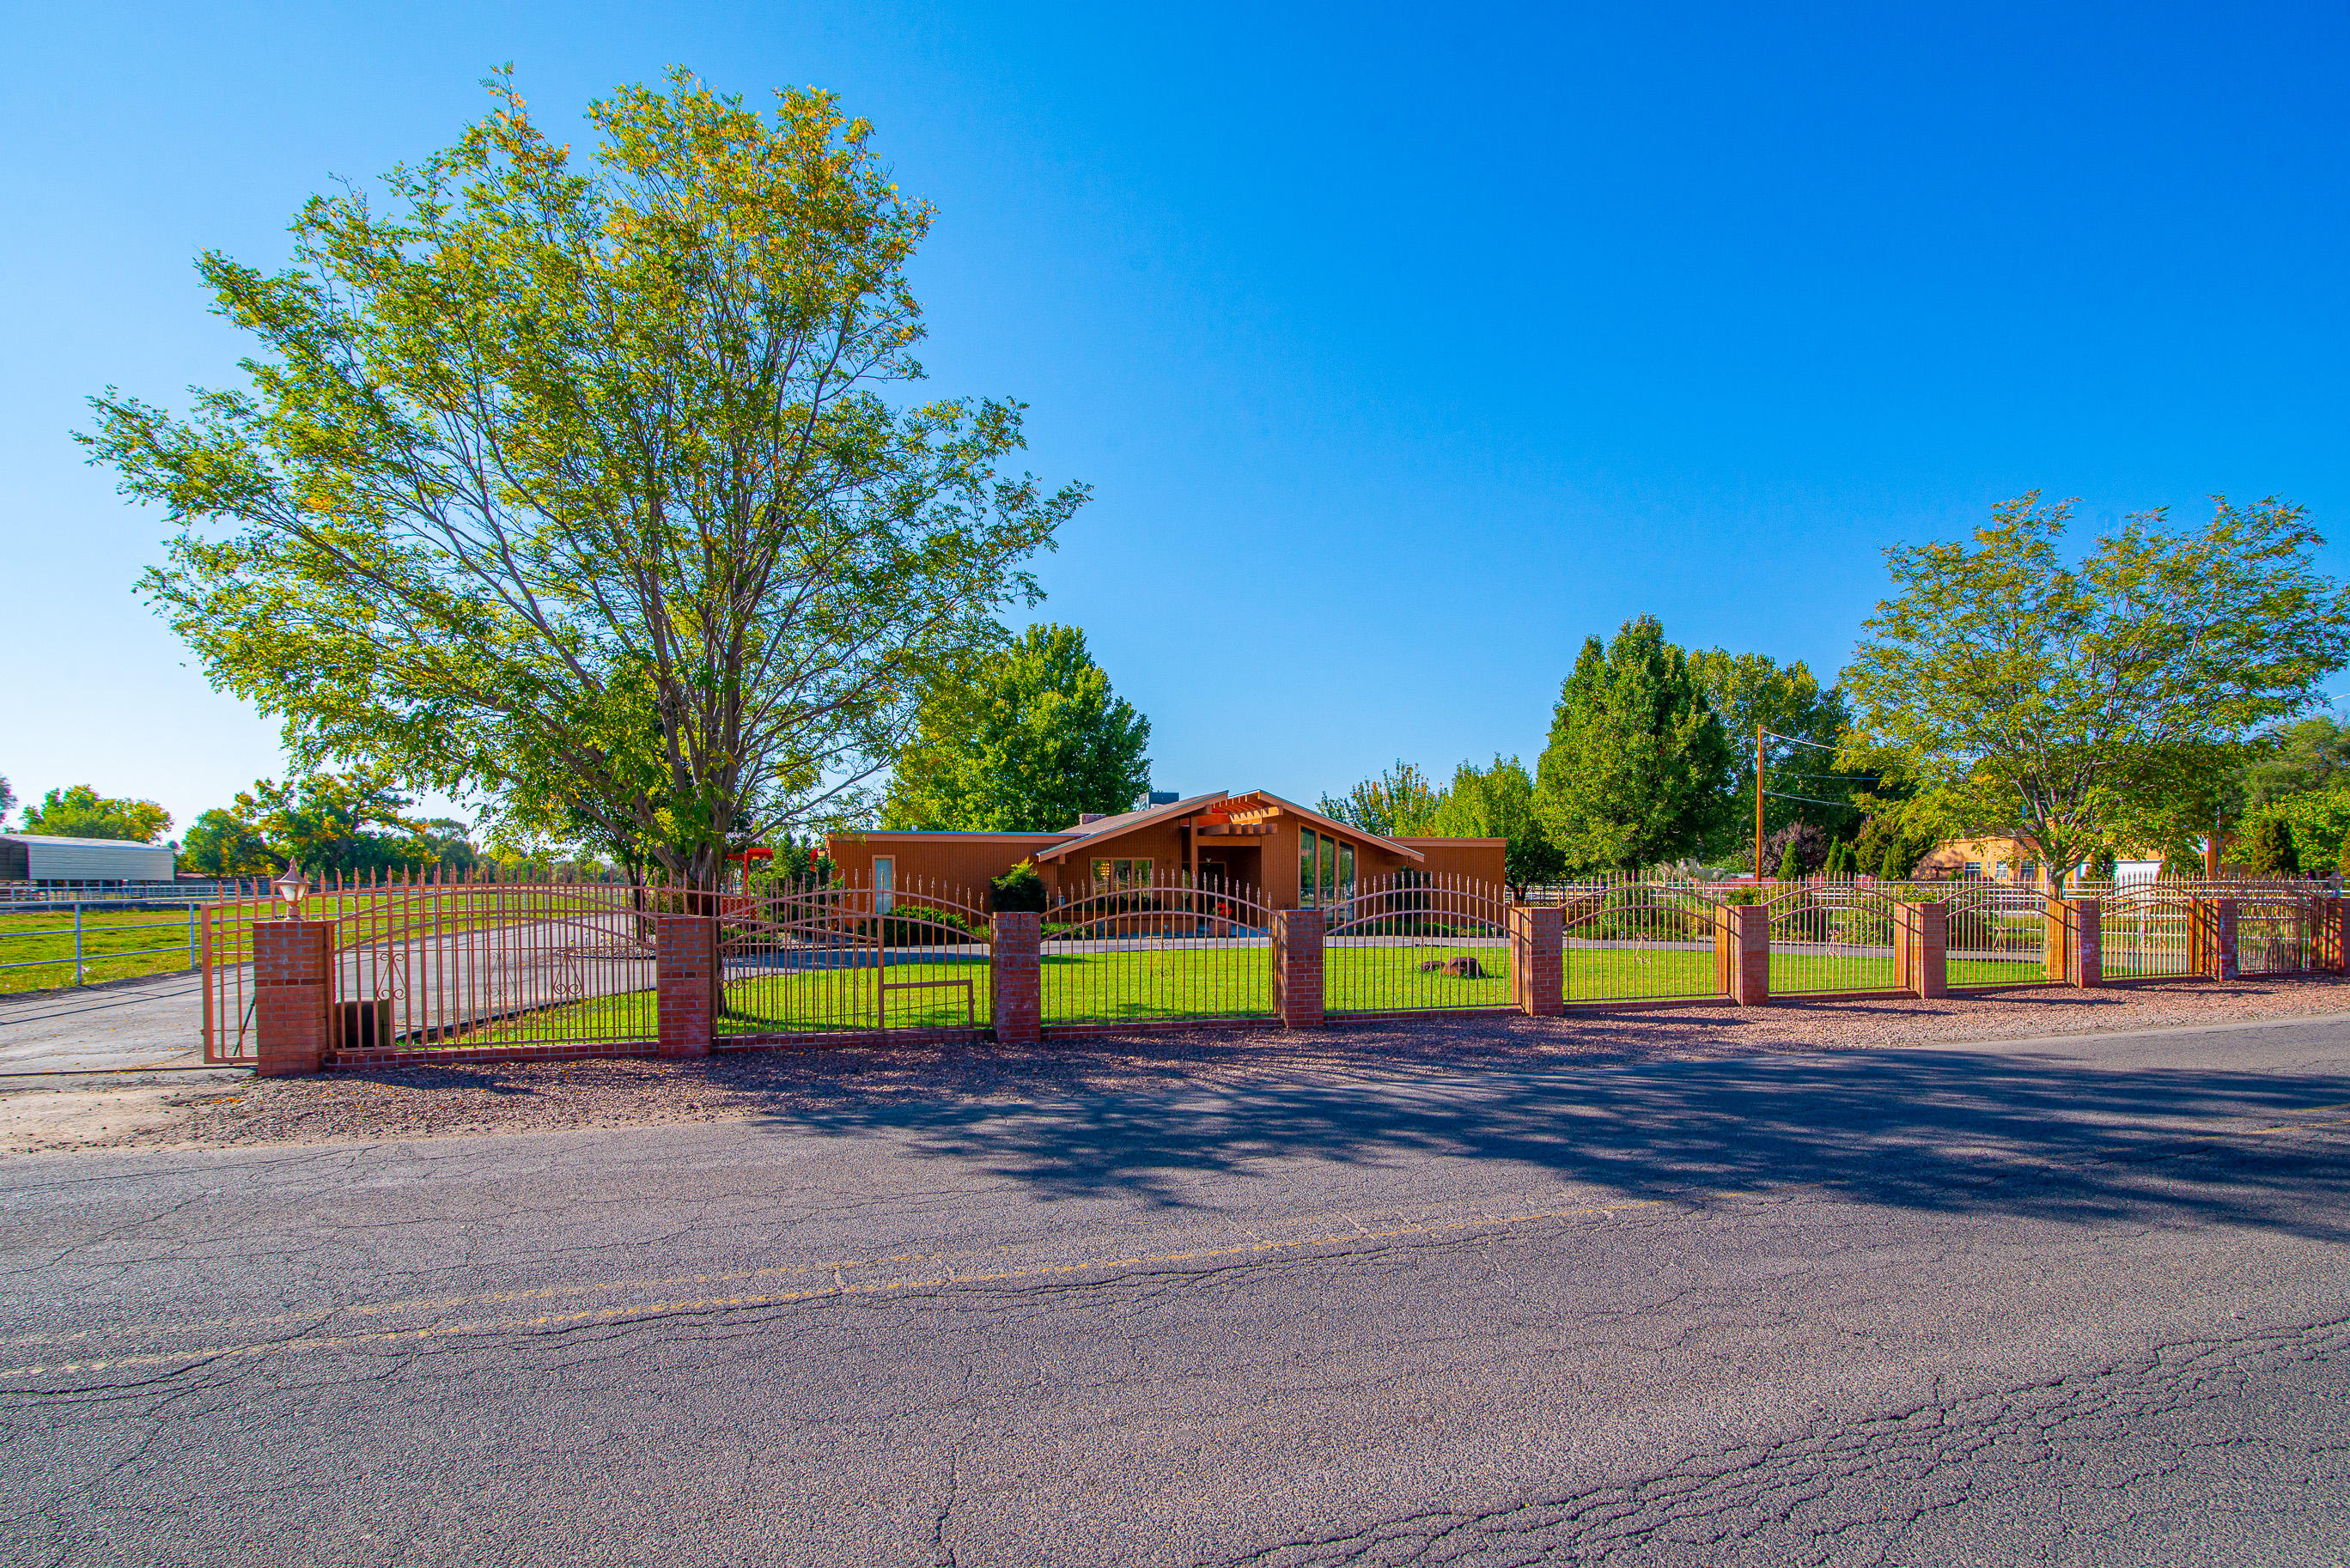 Stunning custom built home in the heart of Bosque Farms. Pride of ownership shows in this custom redwood home complete with 1,600 sq ft barn, 1,200 sq ft casita and green house on 2 acres. This unique property has been impeccably cared for and there's beauty around every corner. Custom wrought iron fencing/gates, park-like landscaping, mature trees and MRGCD irrigation. Main home includes beautiful redwood walls, updated kitchen, lg master bedroom, 3+ living areas, vinyl luxury flooring, HVAC, triple pane windows w/blinds and an ADA bathroom.  Enjoy mornings in the sunroom overlooking the backyard. Casita is fully equipped w/2 lg bedrooms, LR/DR, kitchette, full bathroom and plenty of storage space. Below you'll find the barn complete w/tack room, wash room w/half bathroom, 4 stalls